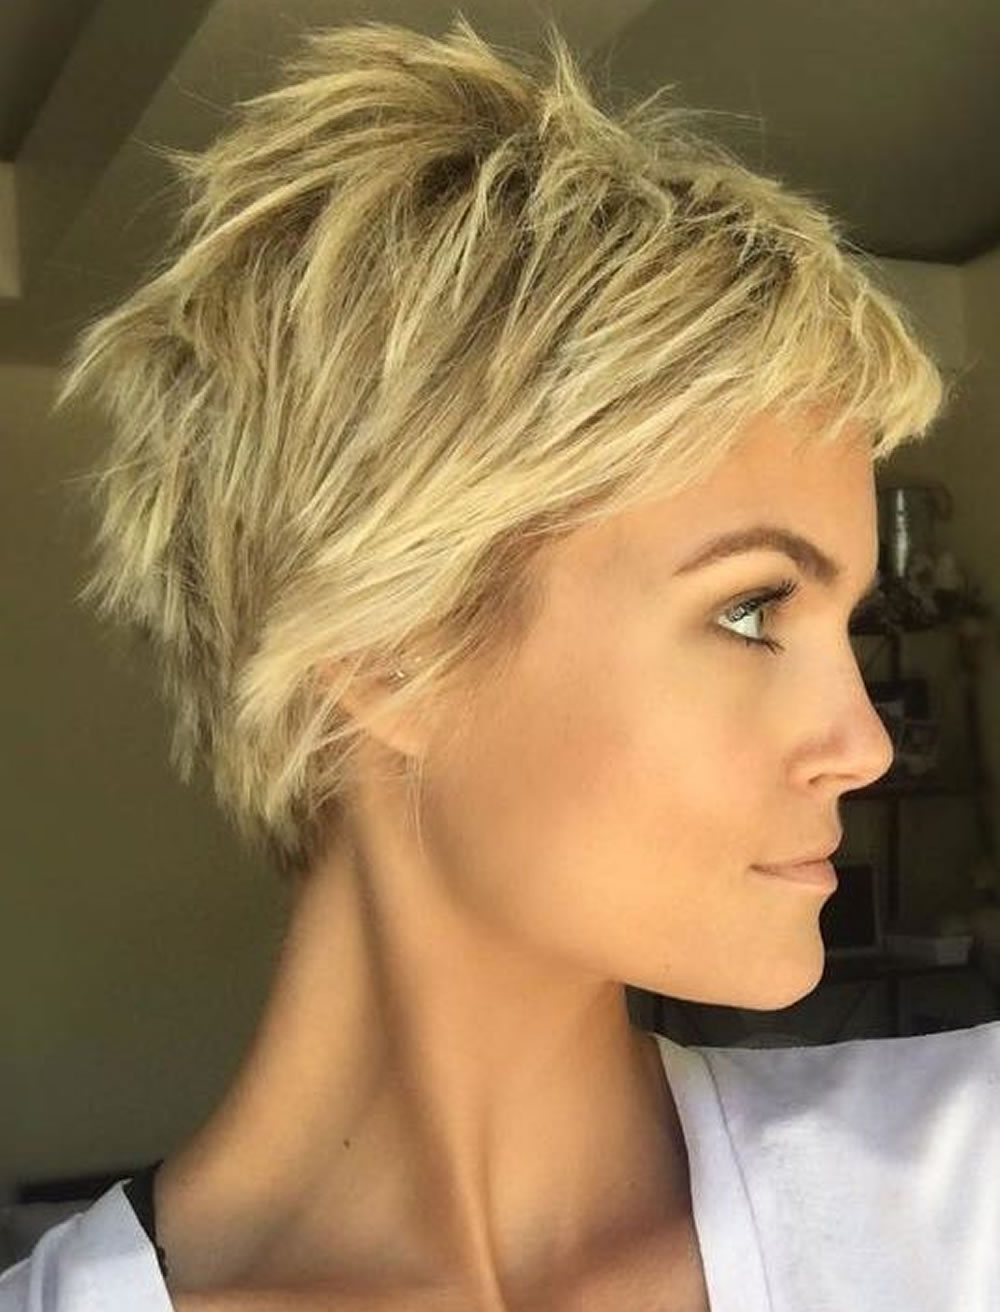 30 Best Asymmetric Short Haircuts For Women Of All Time – Hairstyles Regarding Symmetrical Short Haircuts (View 10 of 25)